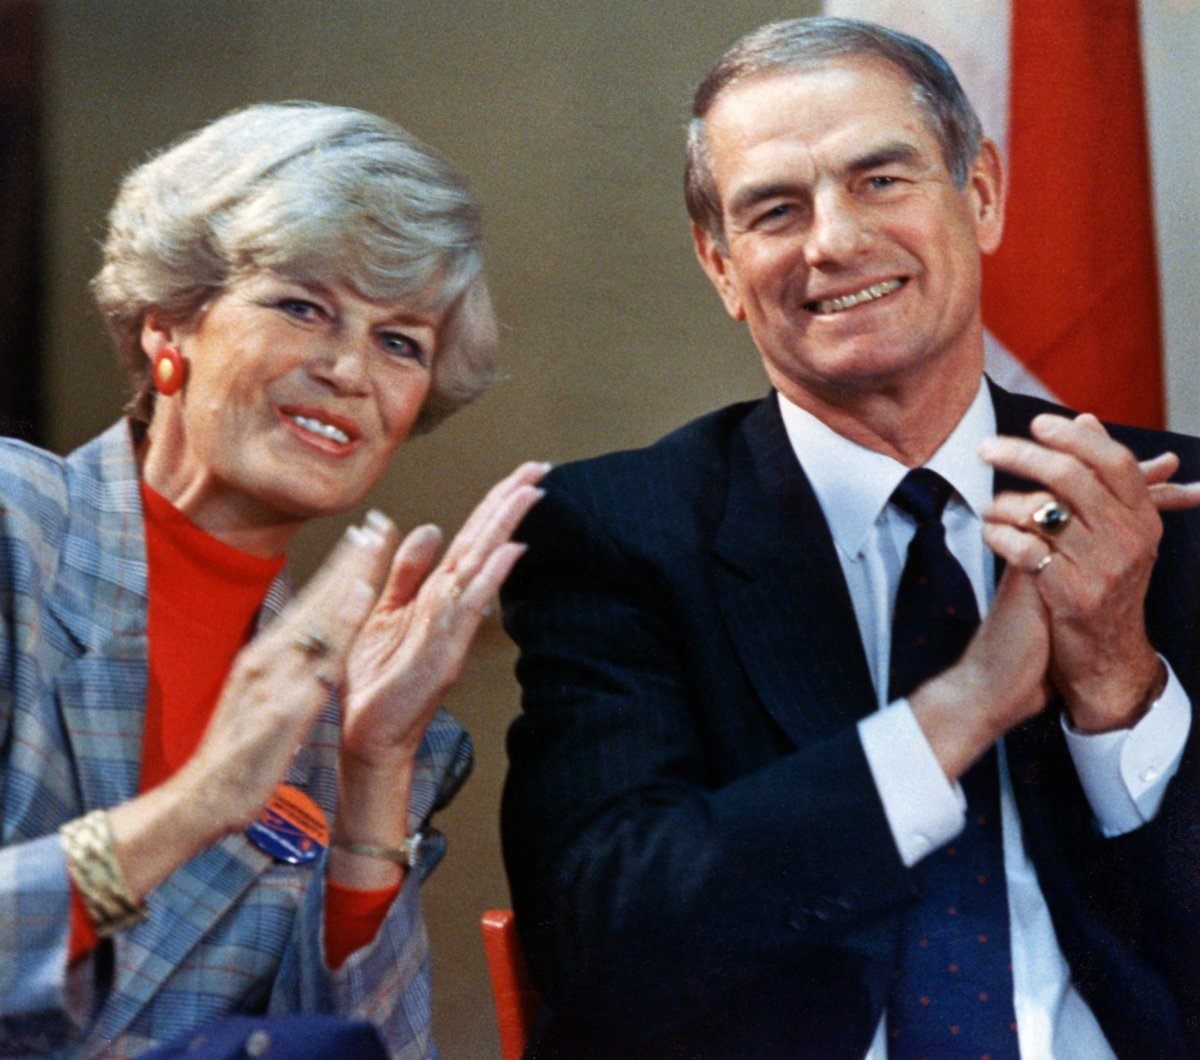 The late Alberta Premier Don Getty and his wife Margaret are greeted warmly at his nomination meeting in Stettler, Alta., Apr. 20, 1989.